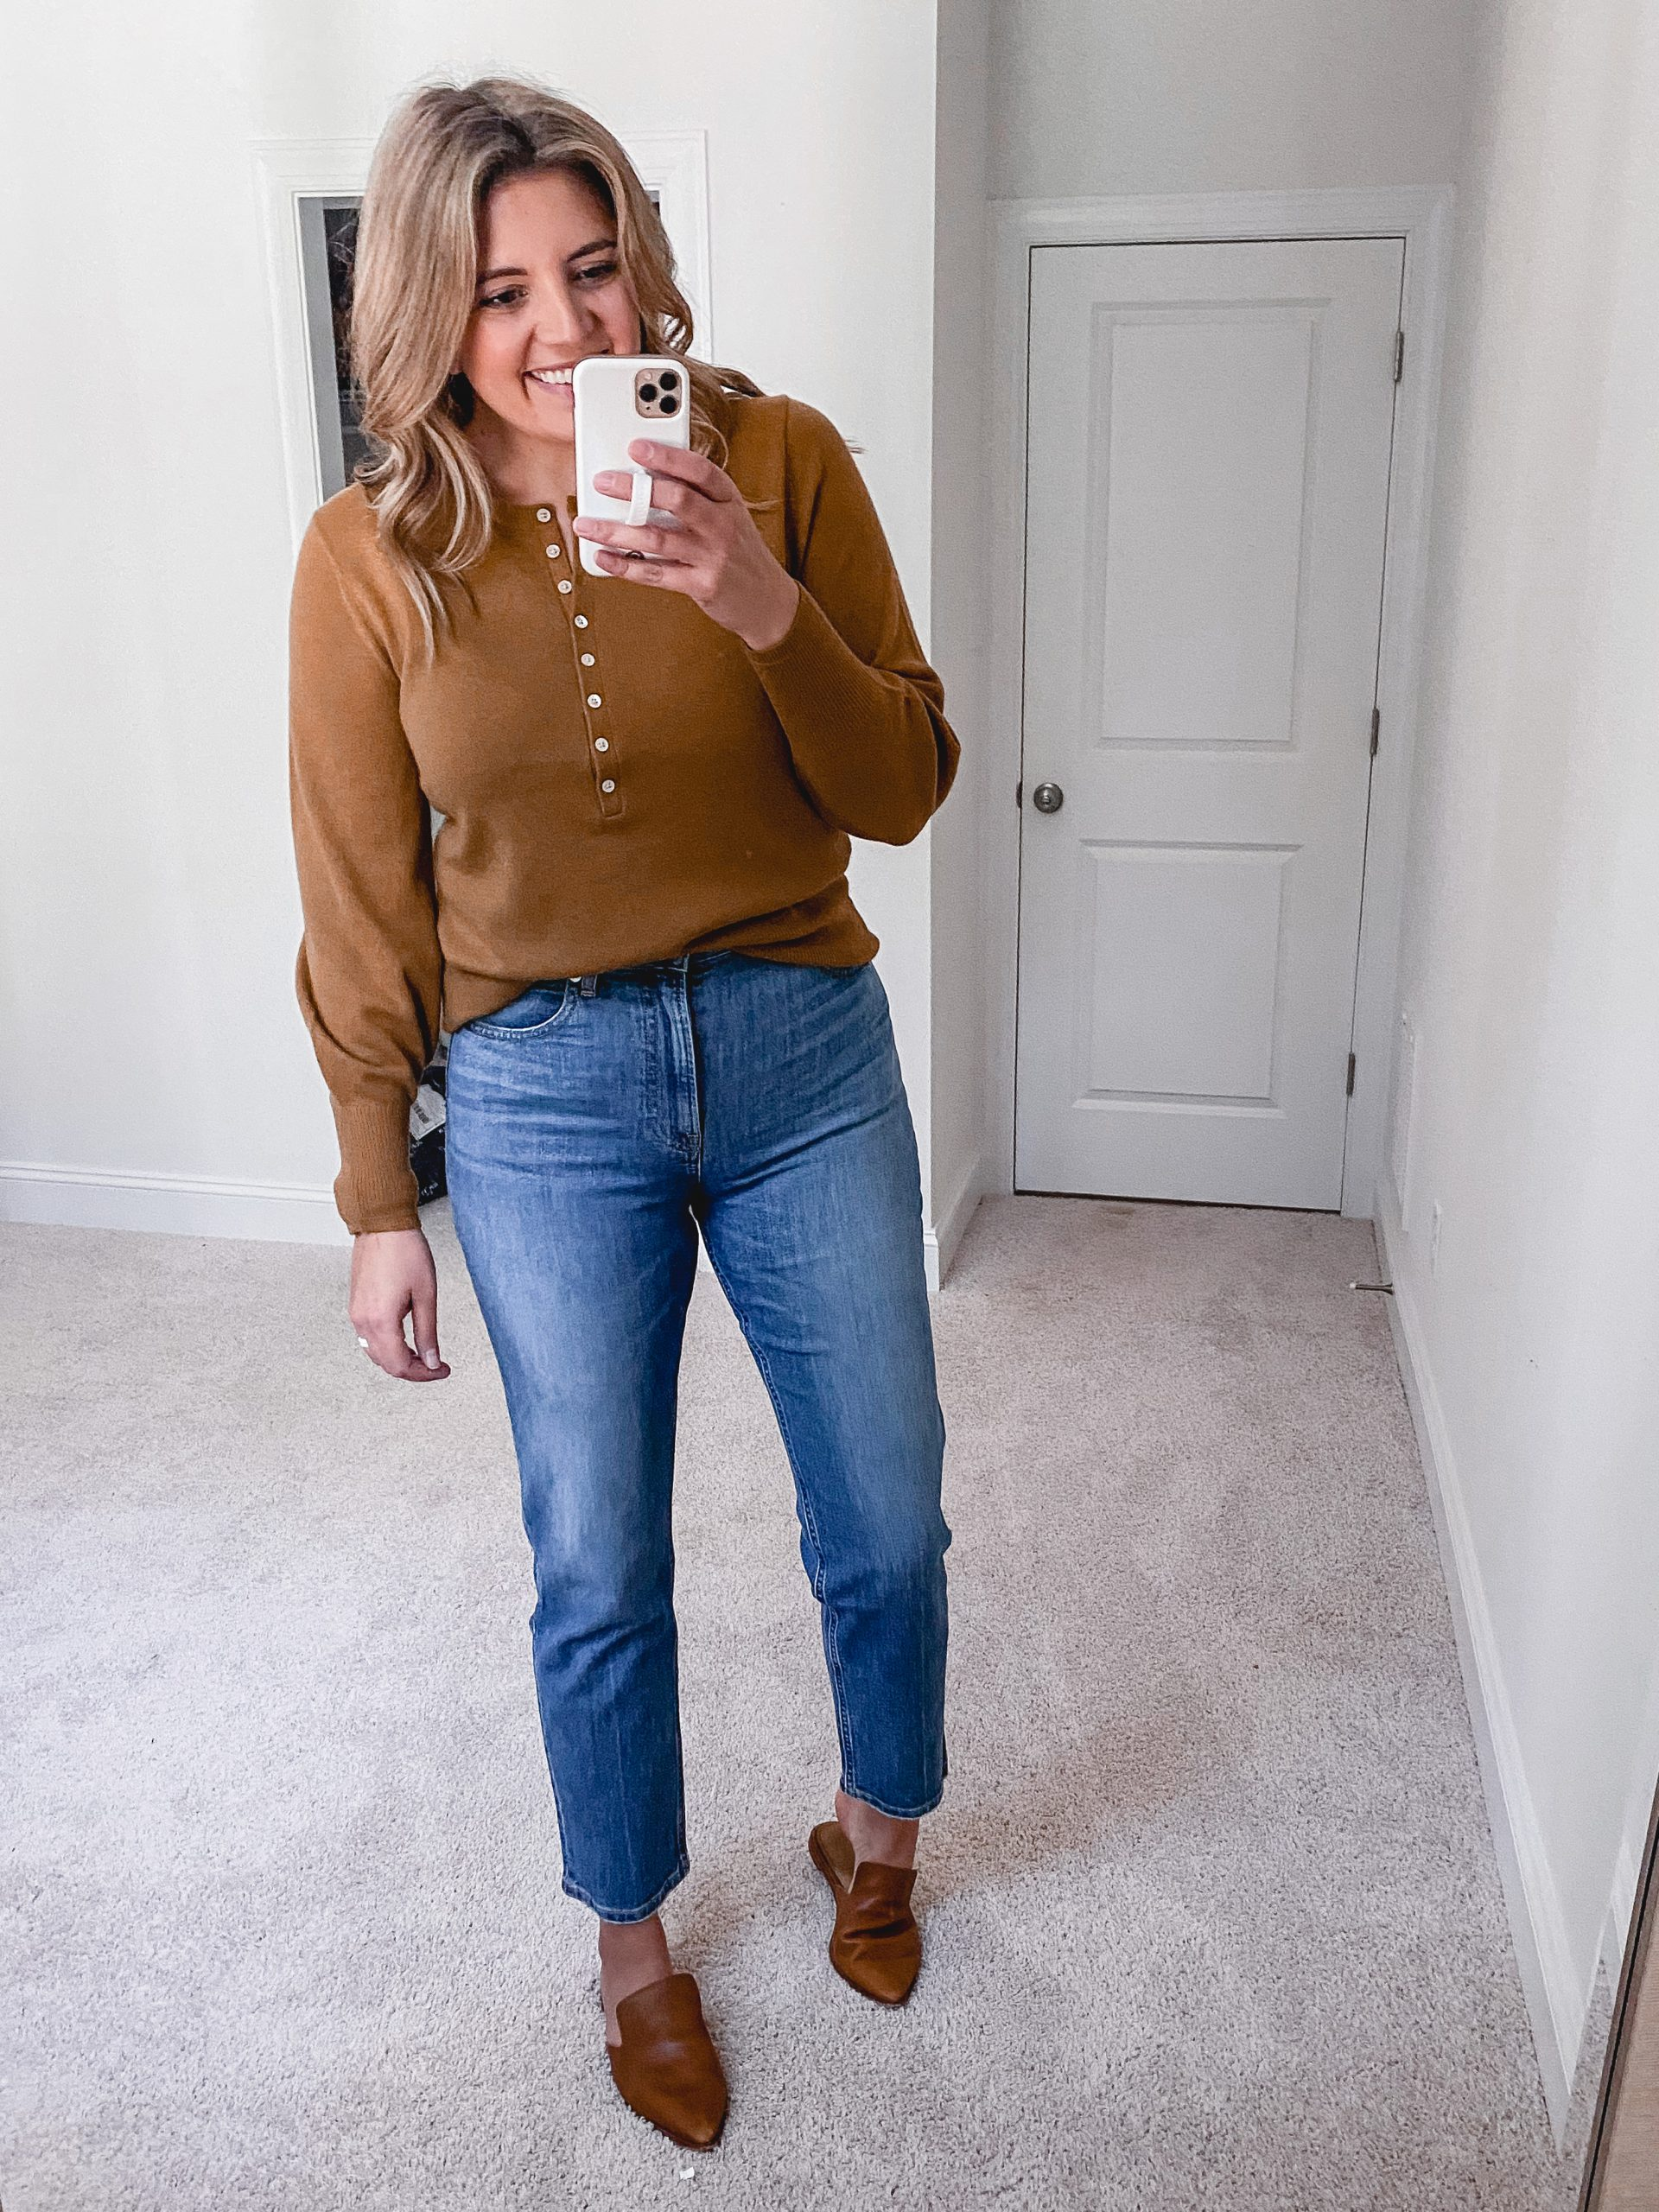 Virginia blogger, Lauren Dix, shares new Everlane arrivals for her fall Everlane try on 2020!